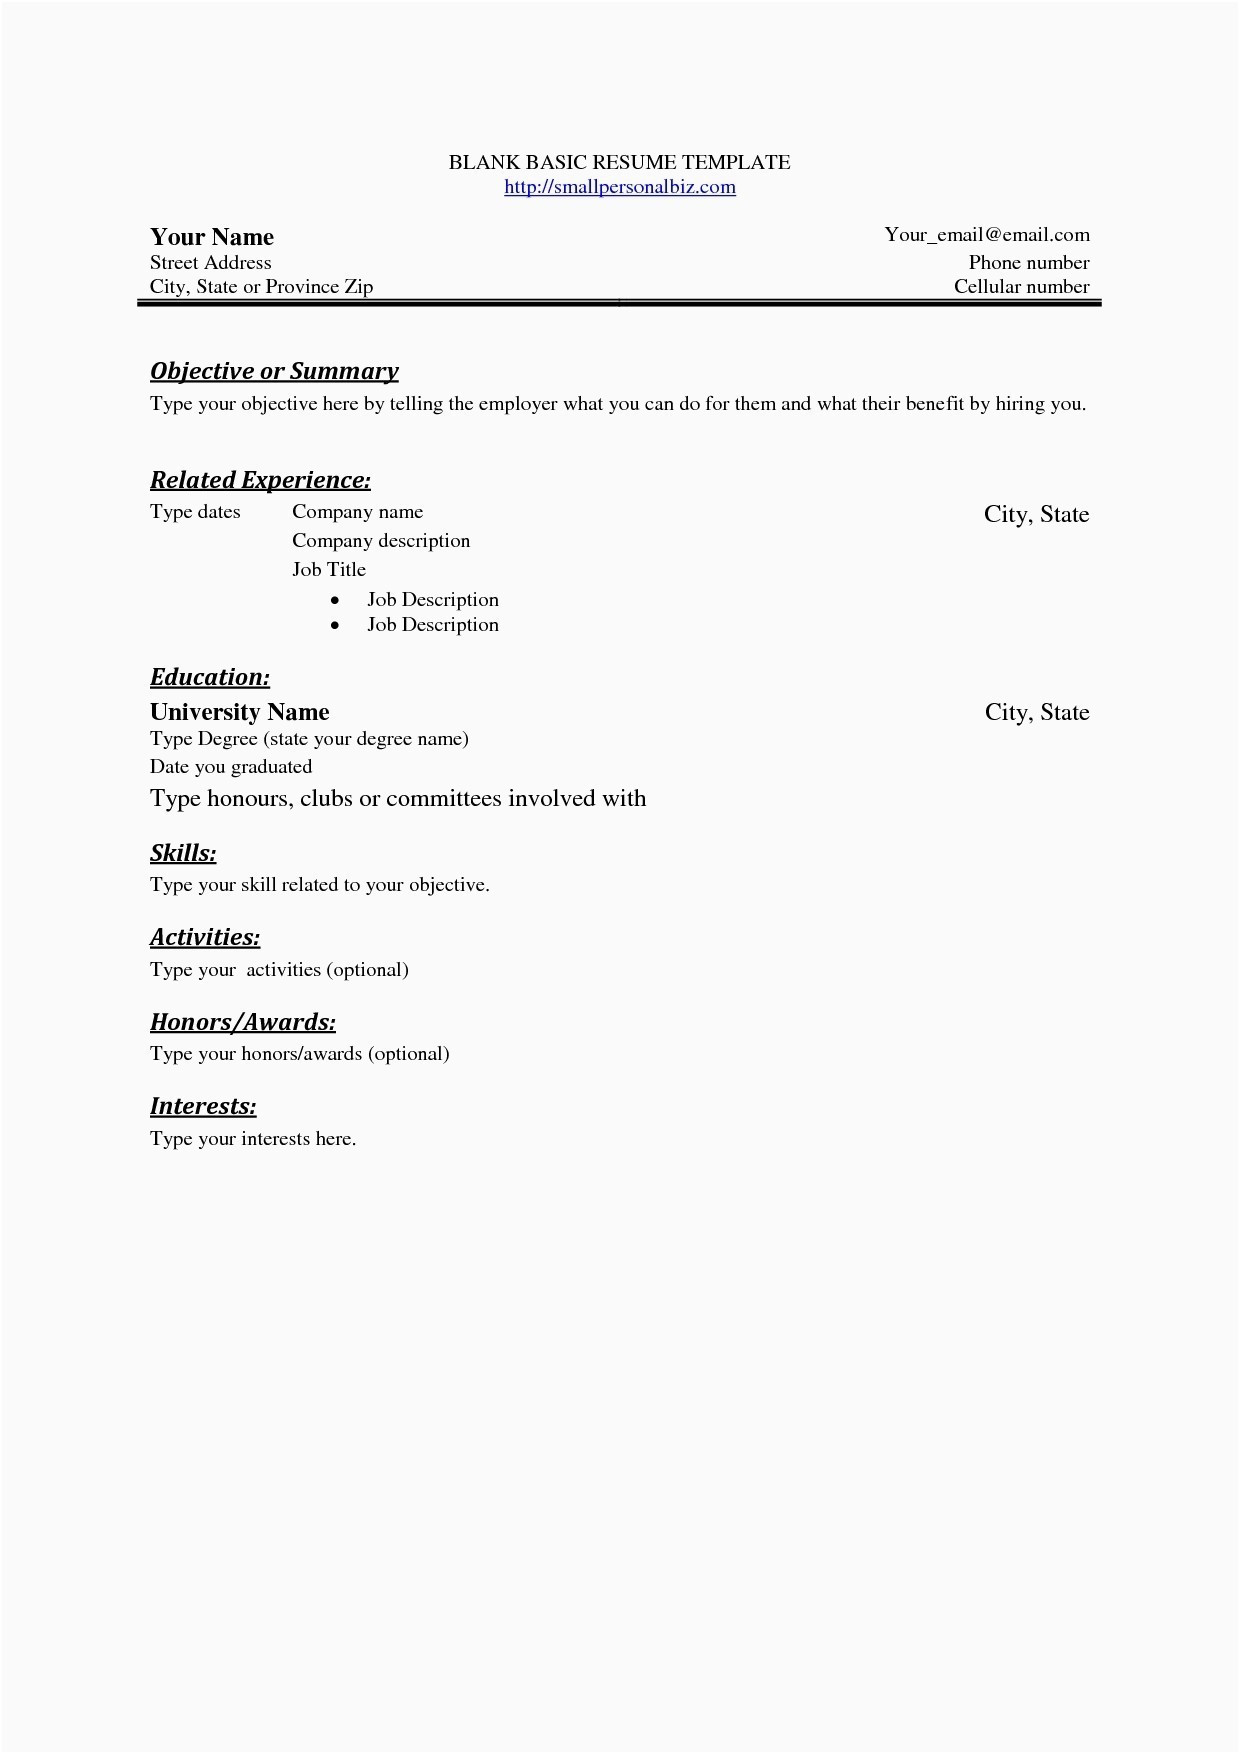 Resume Layout 2018 - Free Cease and Desist Letter Template 2018 Cfo Resume Template